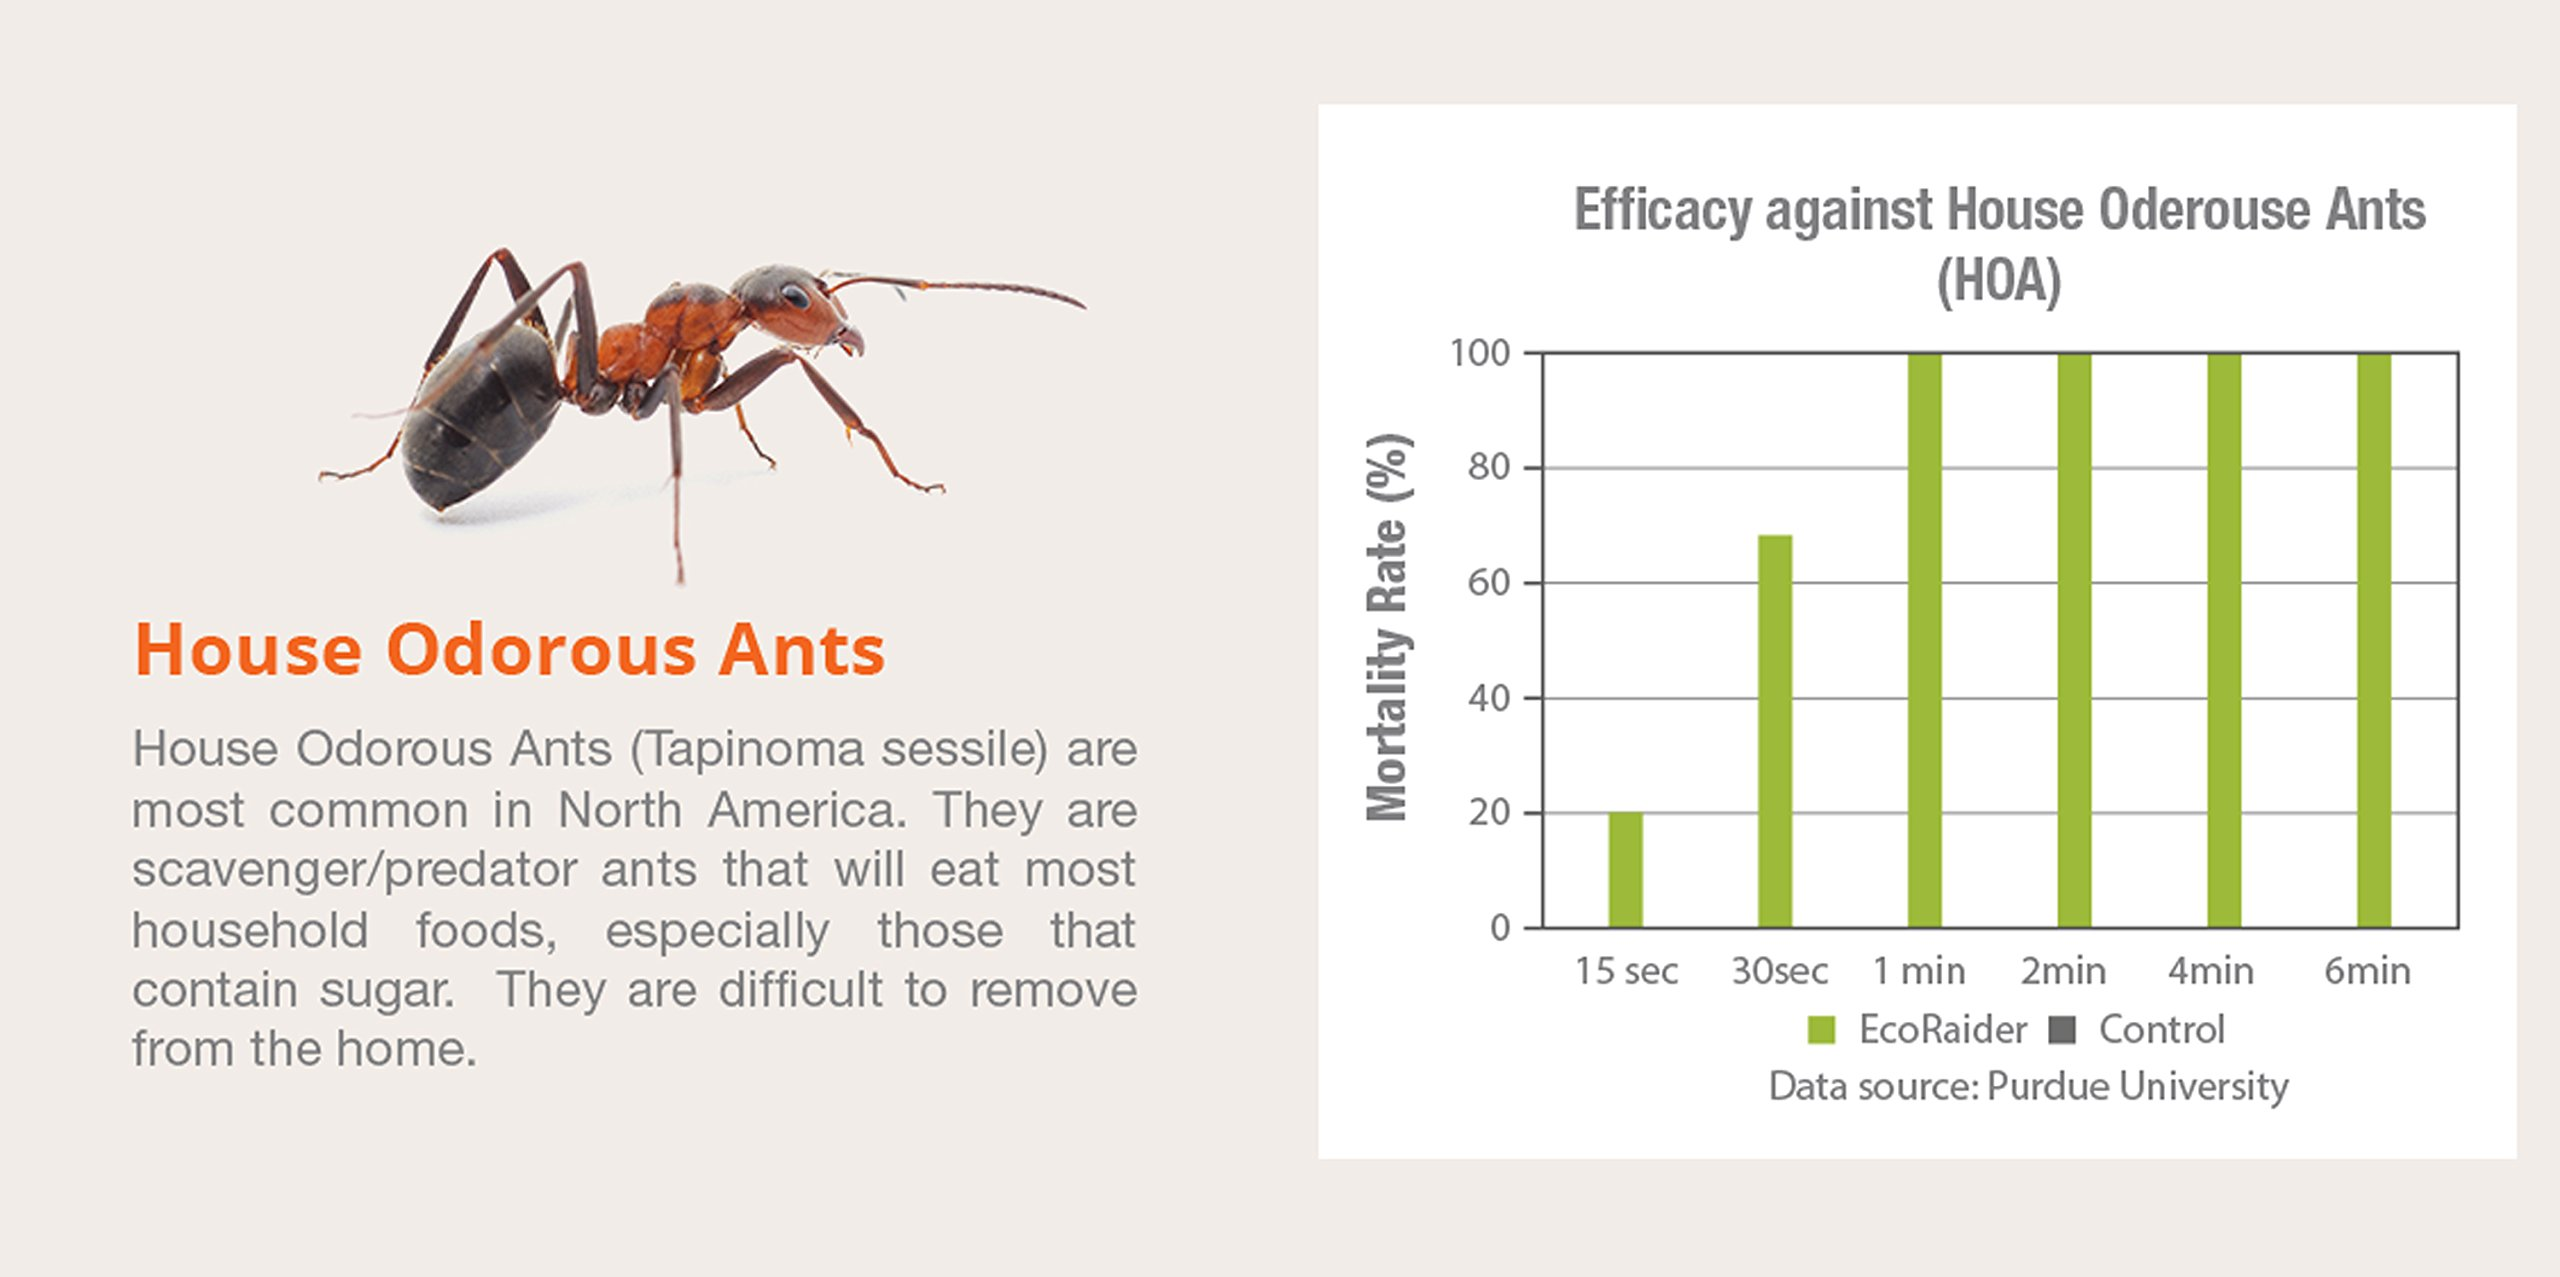 EcoRaider Ant Killer & Crawling Insect Killer (Citrus Scent) 16 OZ, Natural & Non-Toxic by EcoRaider (Image #4)